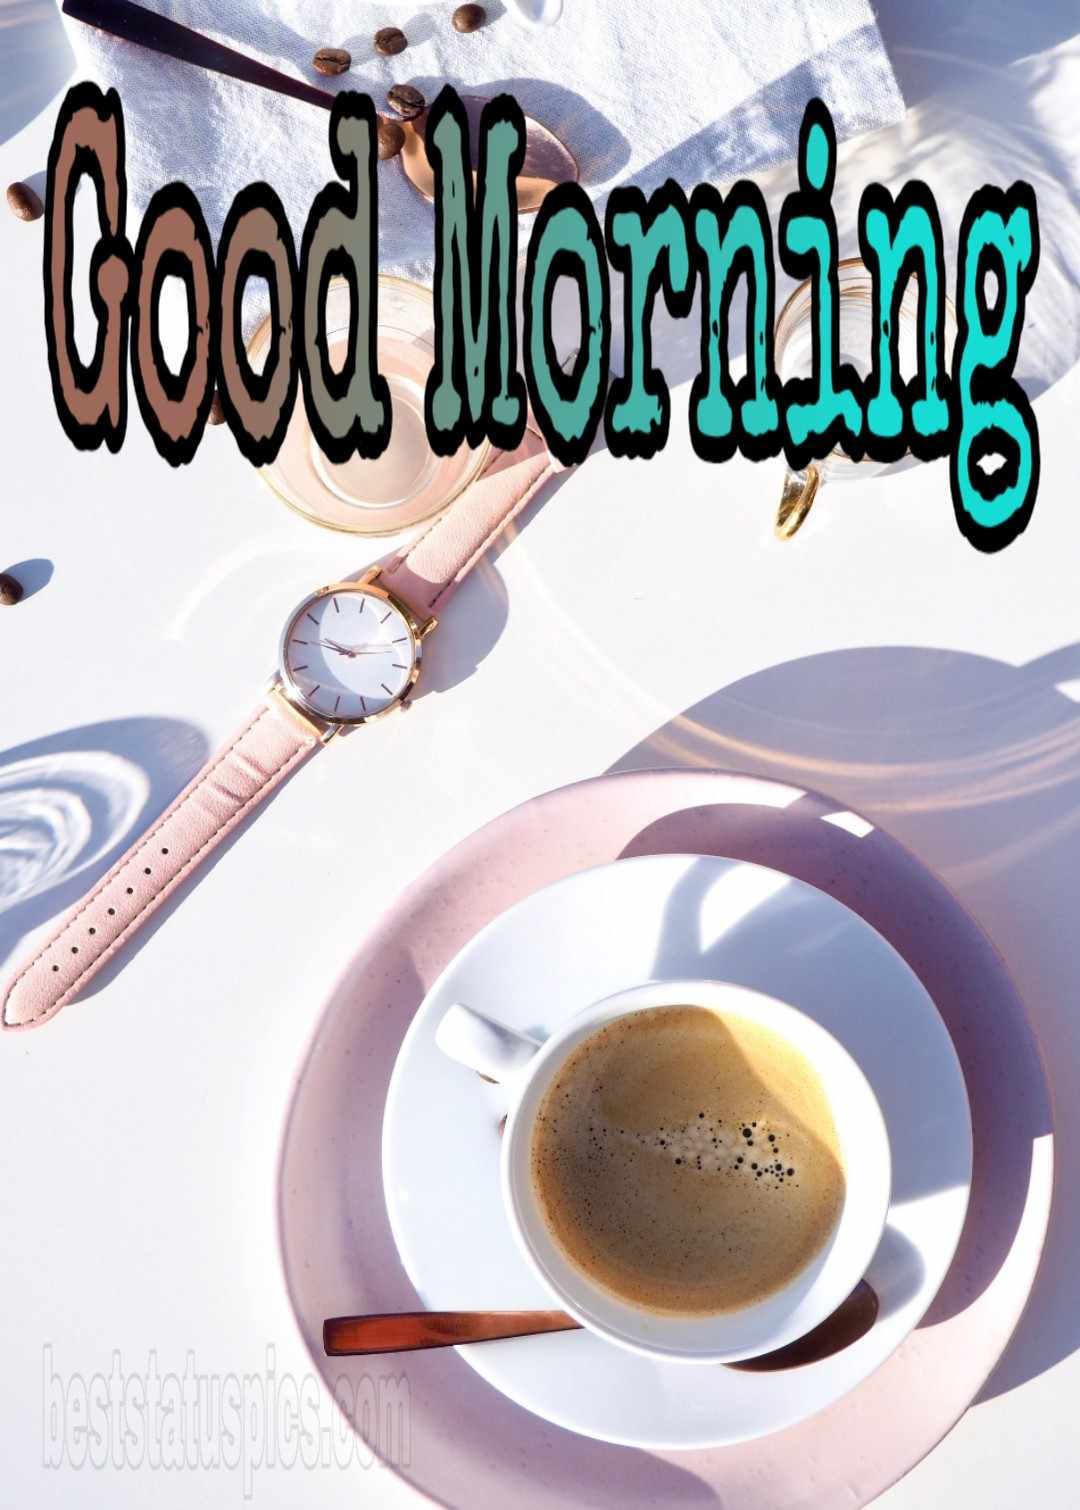 Good morning cup of coffee image free download